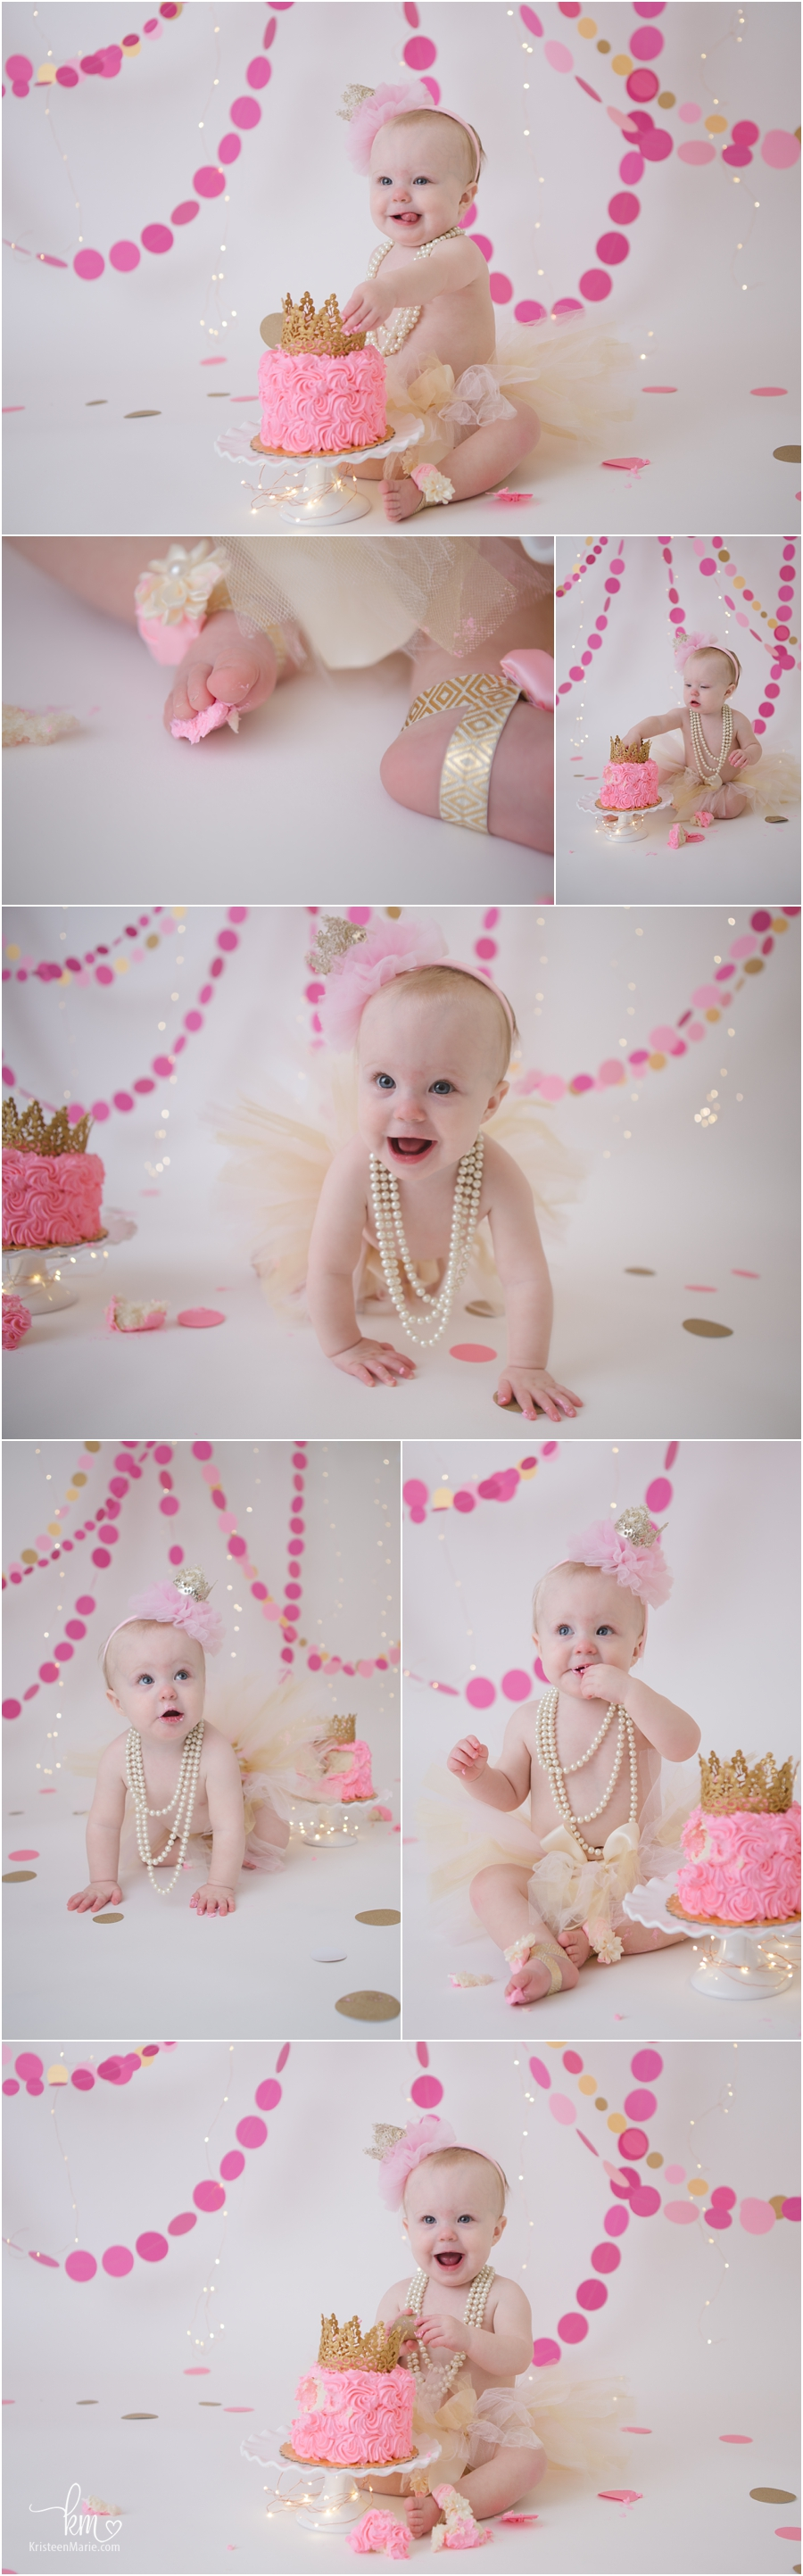 1st birthday cake smash session - pink and gold princess themed